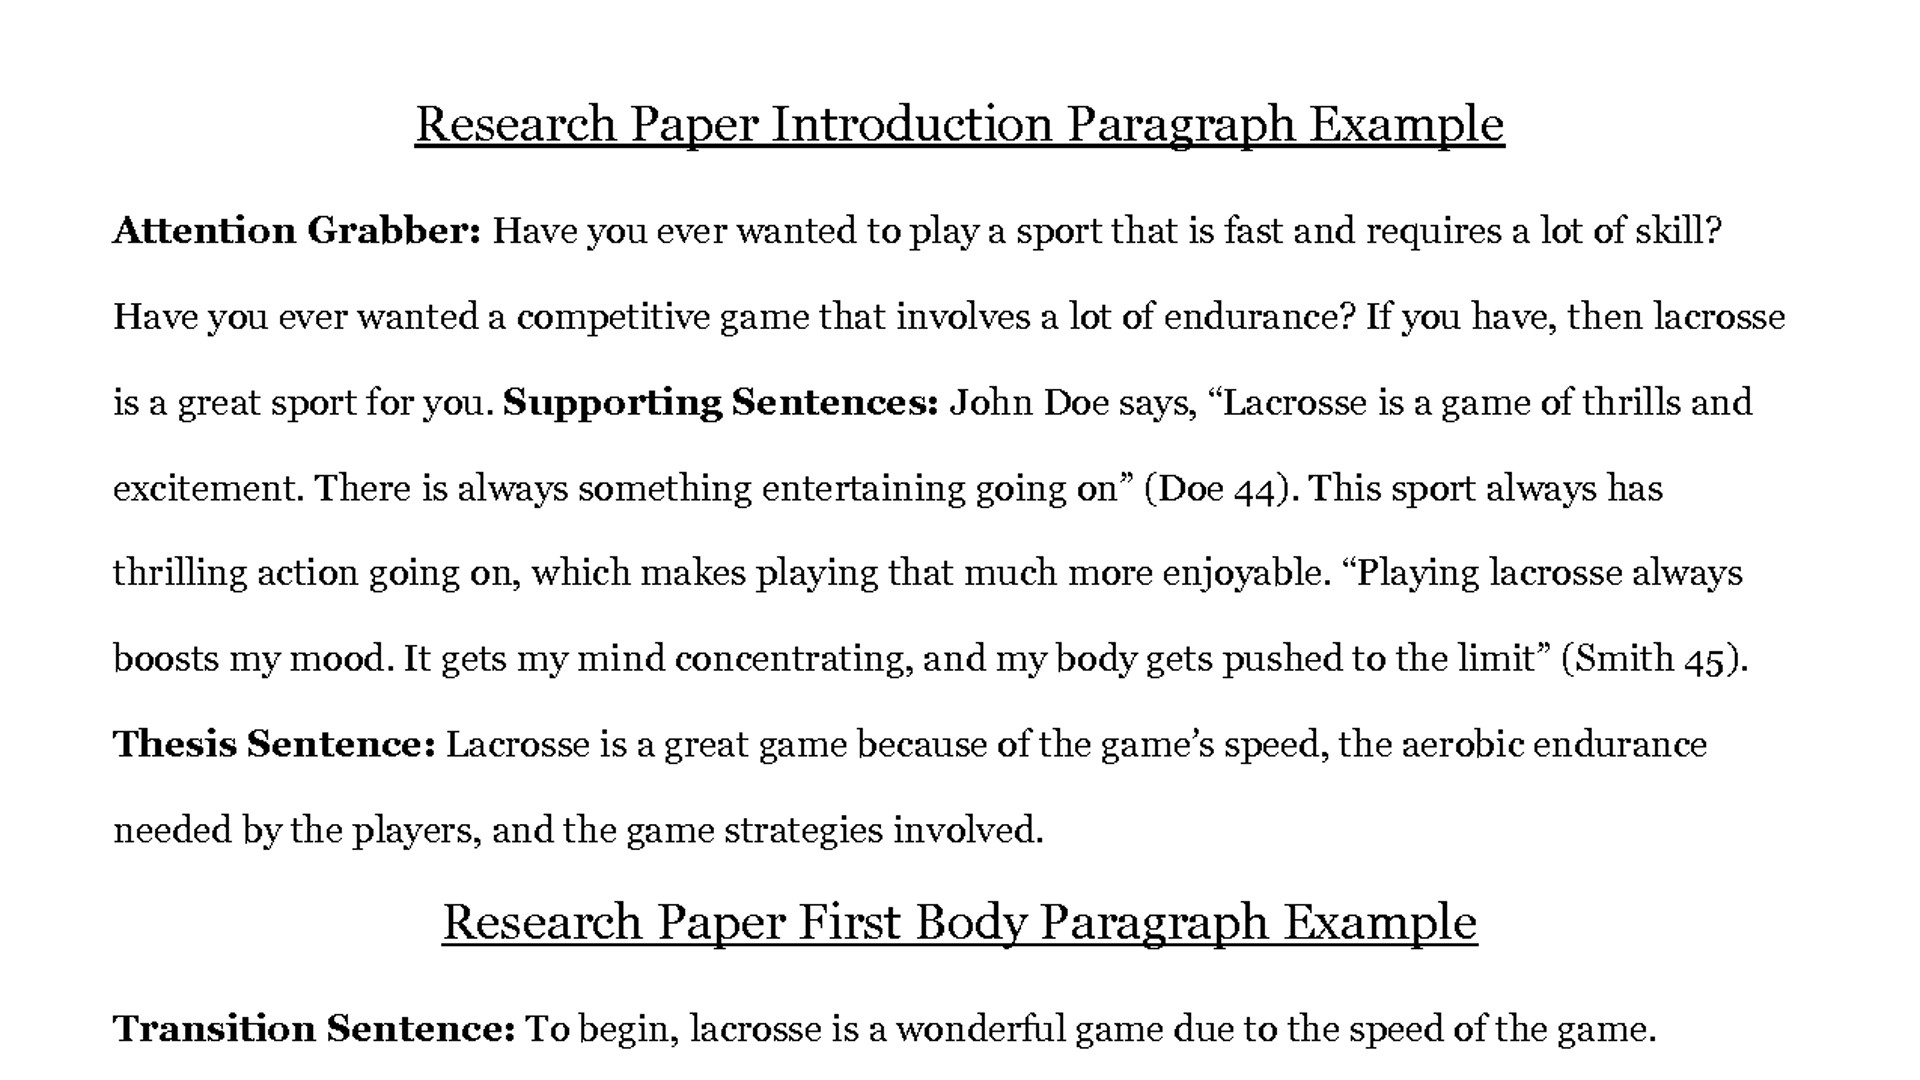 013 Example Of An Introduction Paragraph For Research Paper Marvellous Conclusion Essays Format Good Essay Conclusions Examples Template Frightening A In Pdf 1920